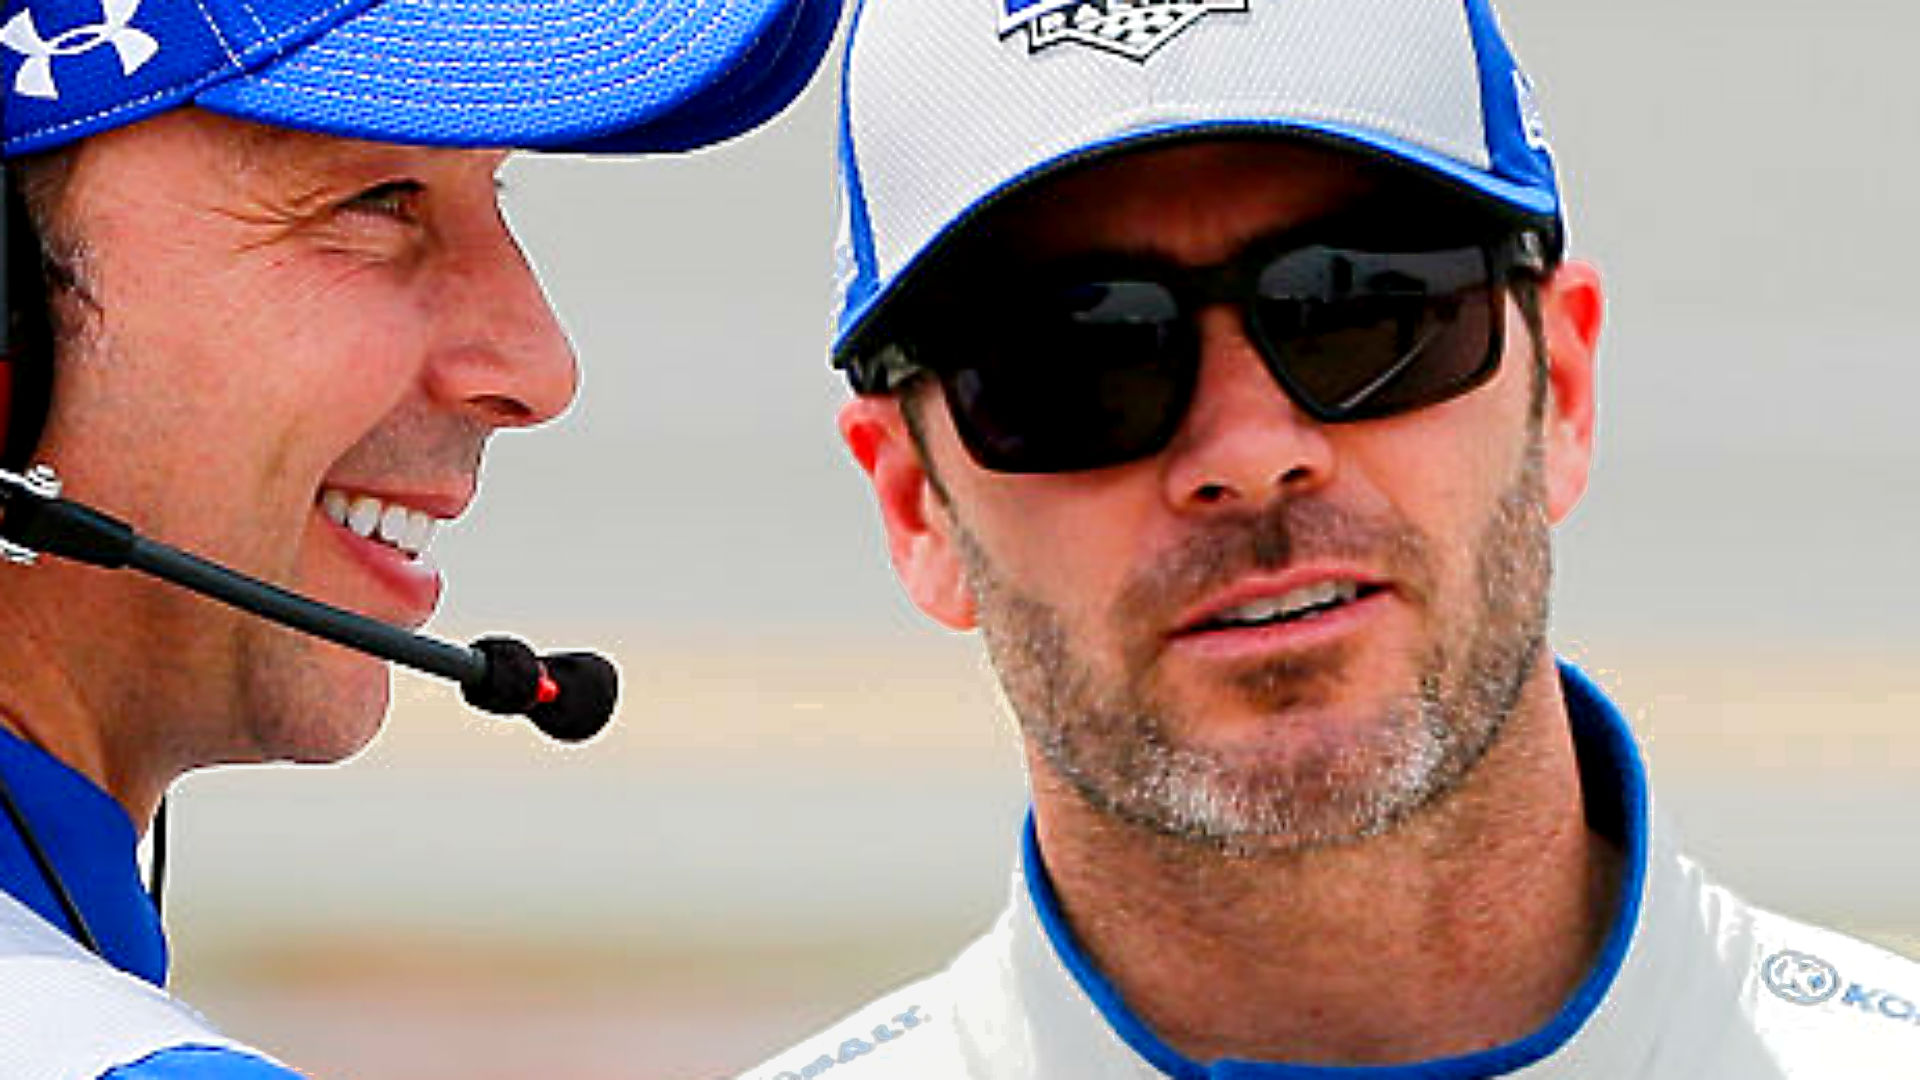 Drivers in 40-car Dover field must contend with monster: Jimmie Johnson | NASCAR | Sporting News